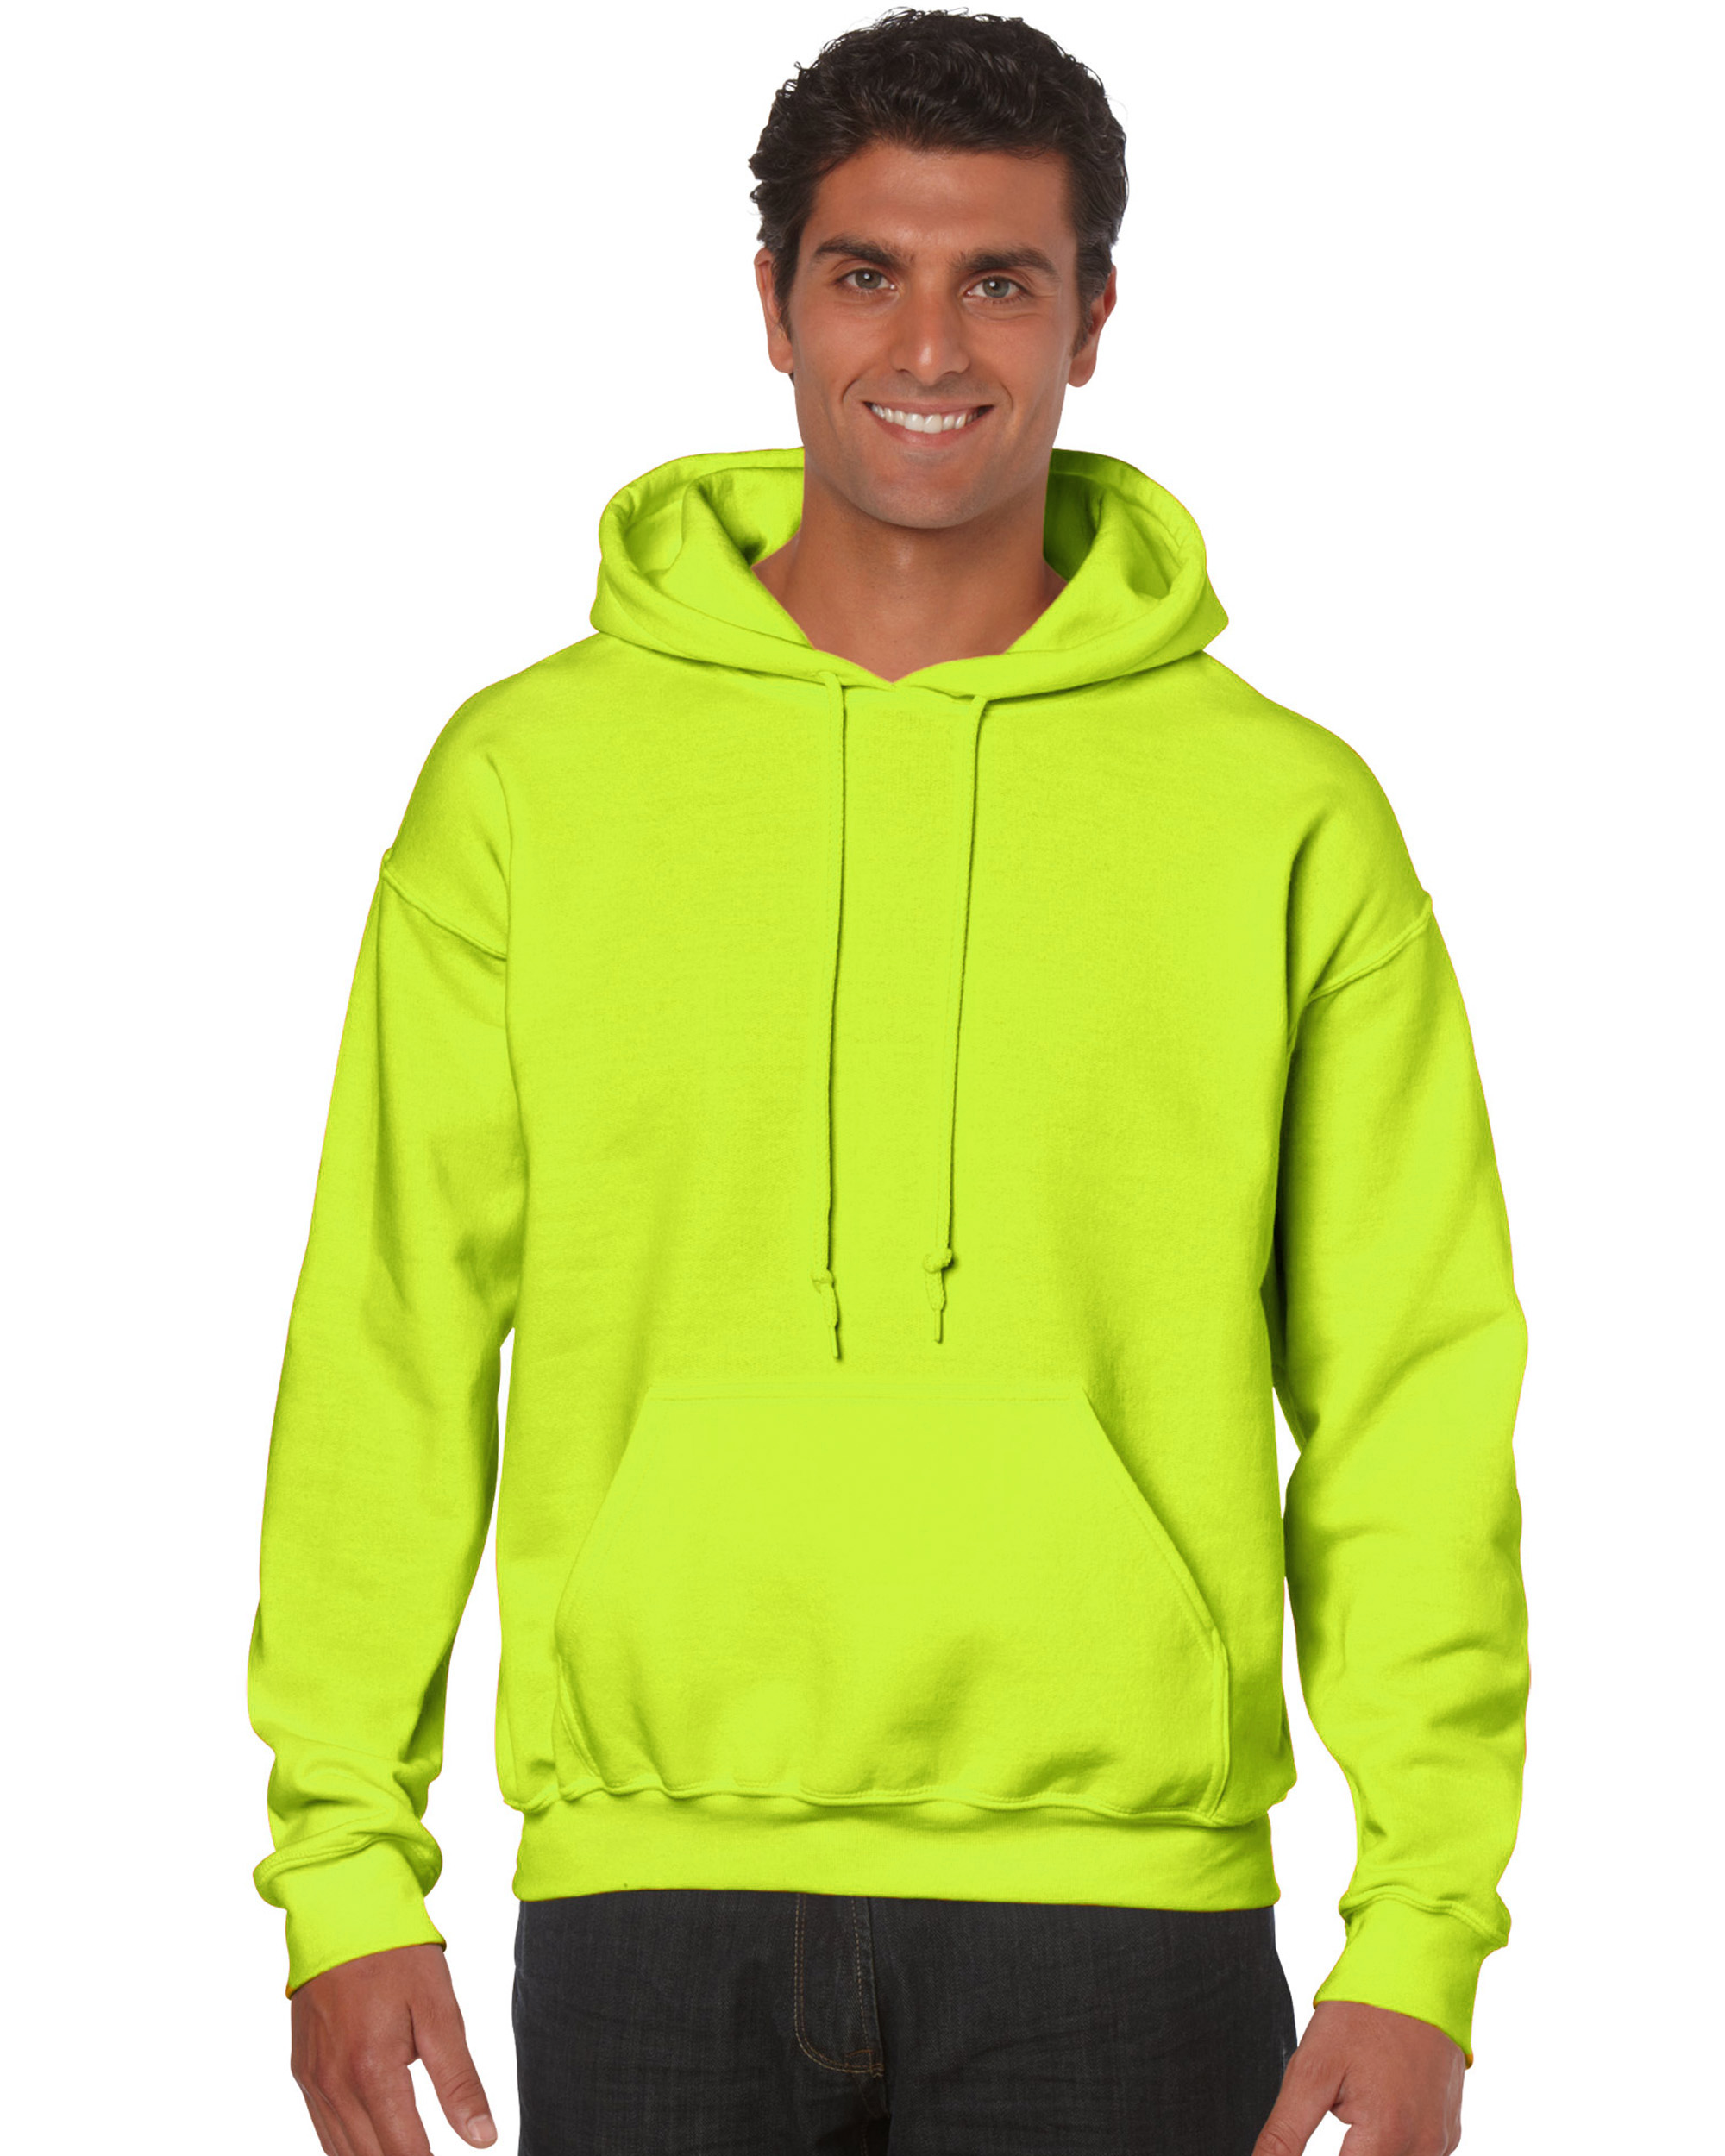 Bluza Heavy Blend Hooded Adult GILDAN 18500 - Gildan_18500_29 - Kolor: Safety green